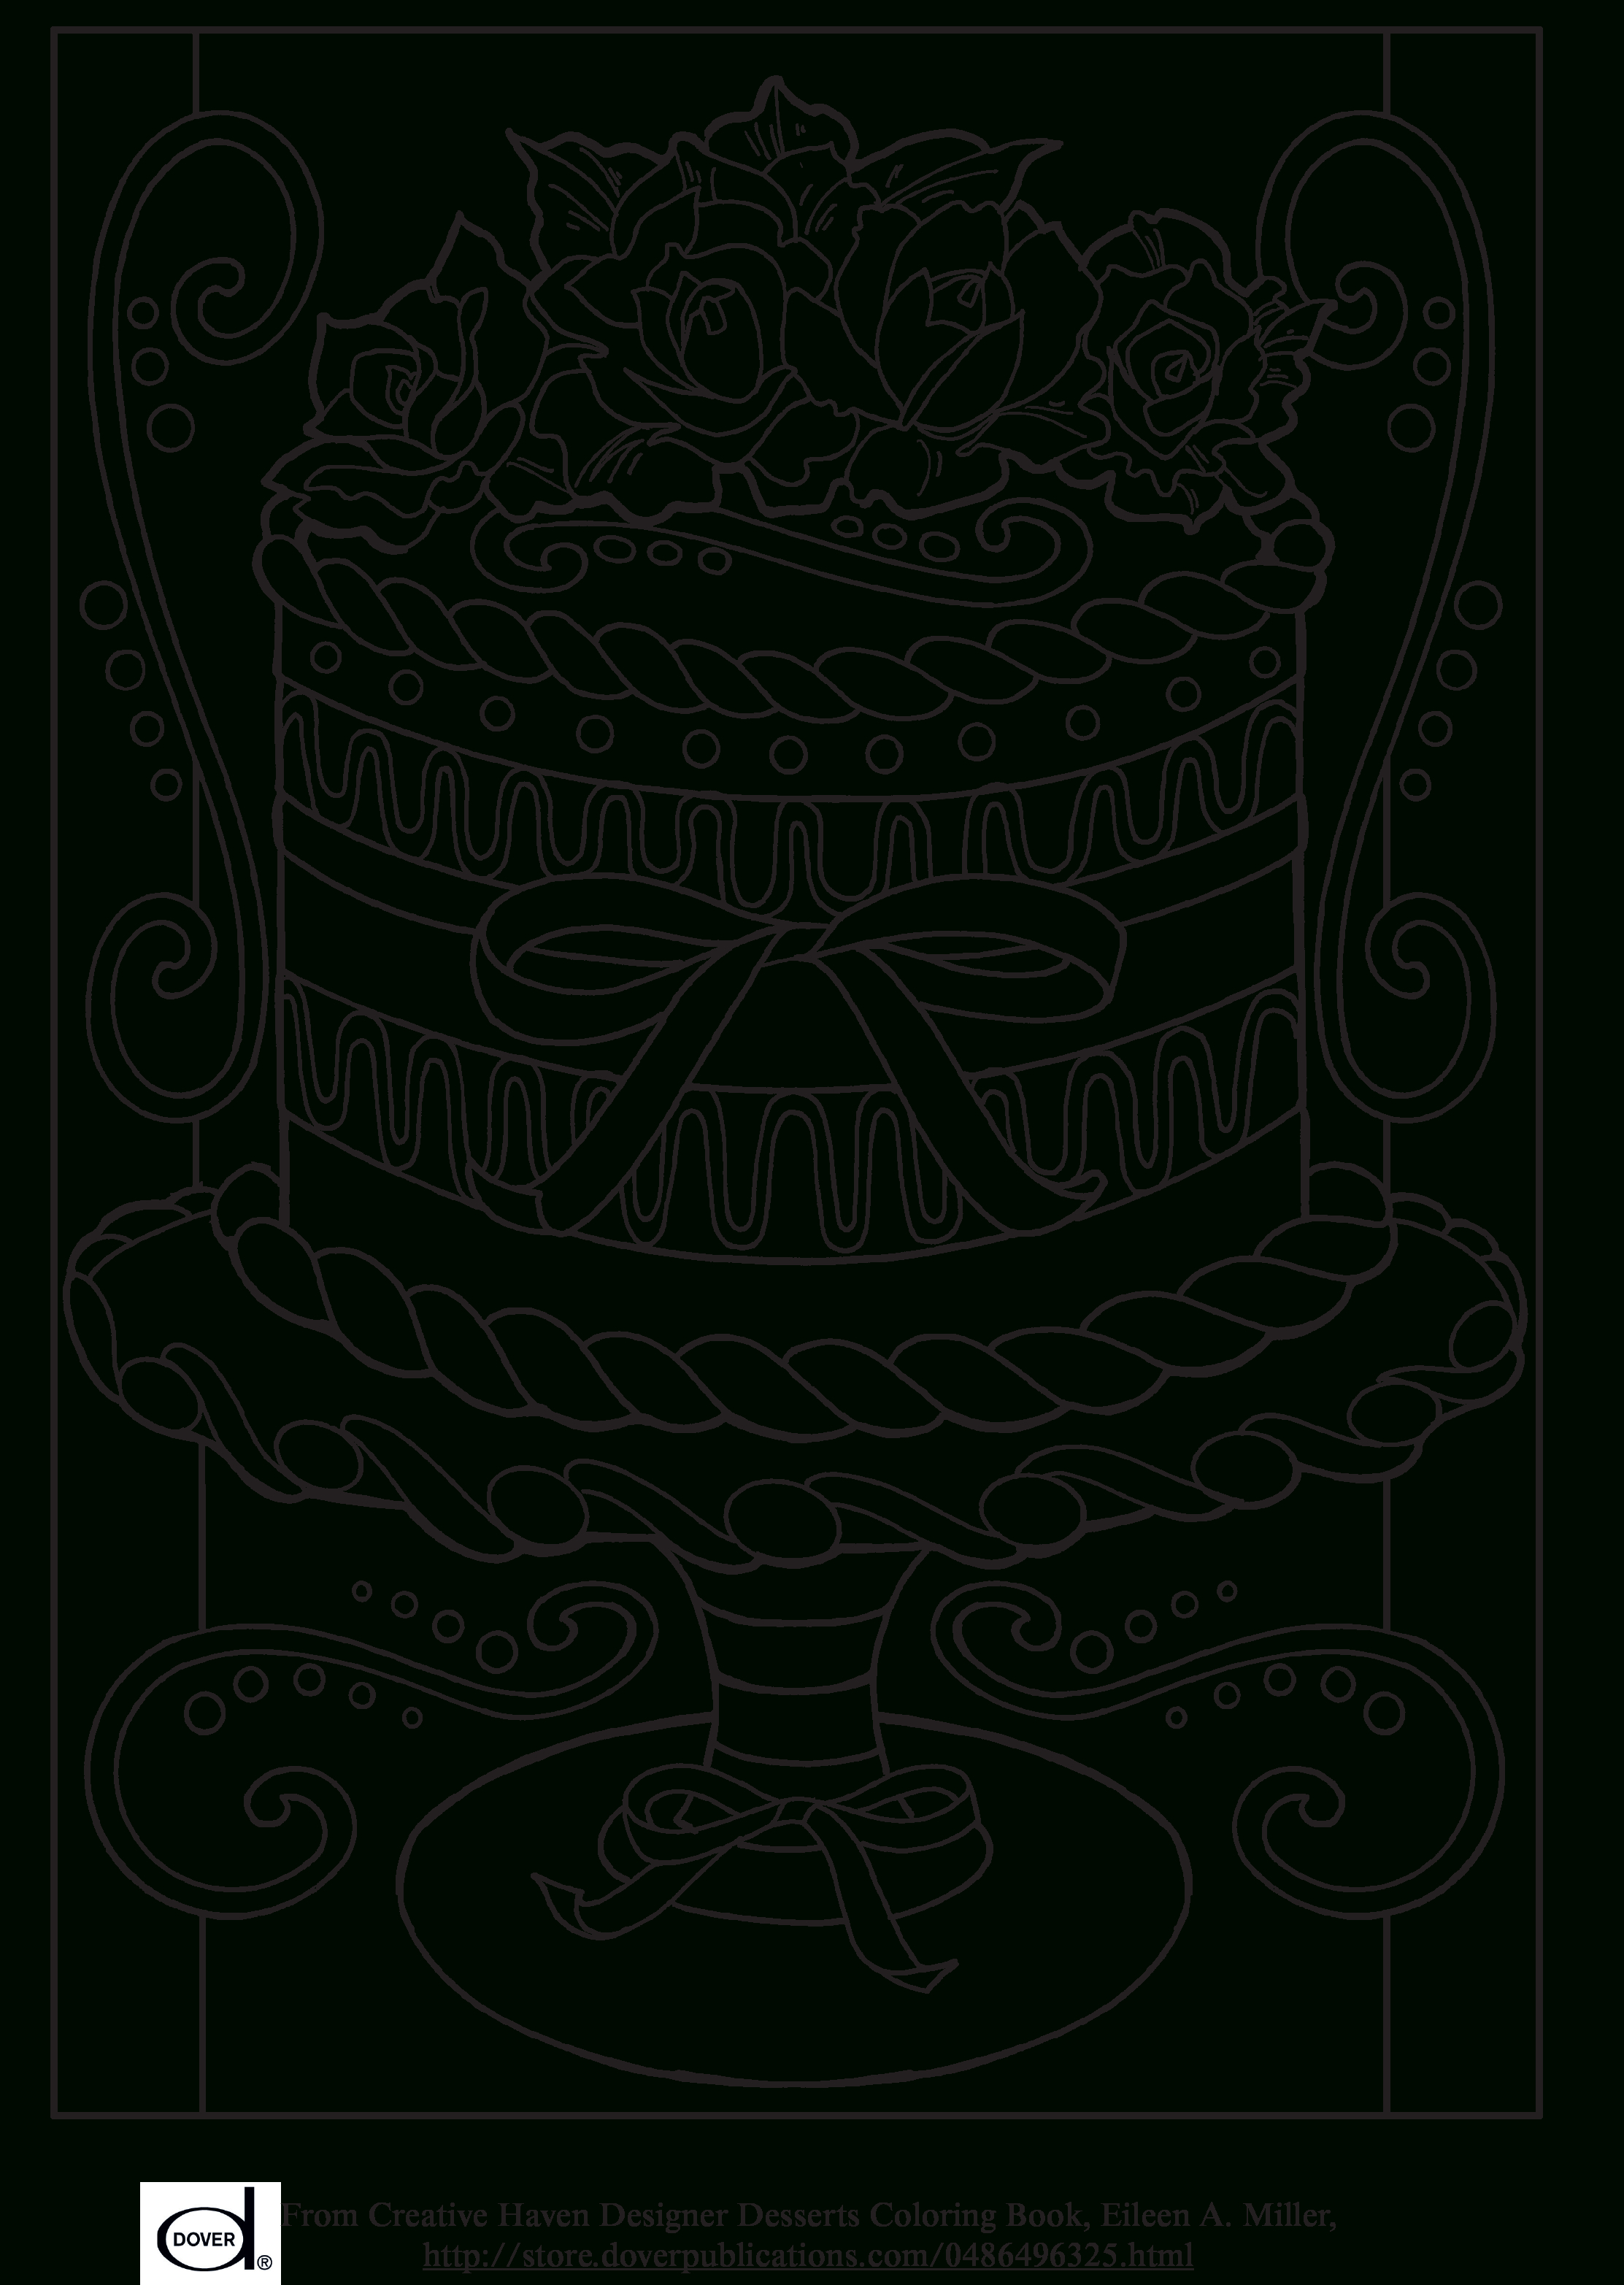 Free Printable Adult Coloring Pages - Wedding Cake | Art: Coloring | Colouring Worksheets Printable